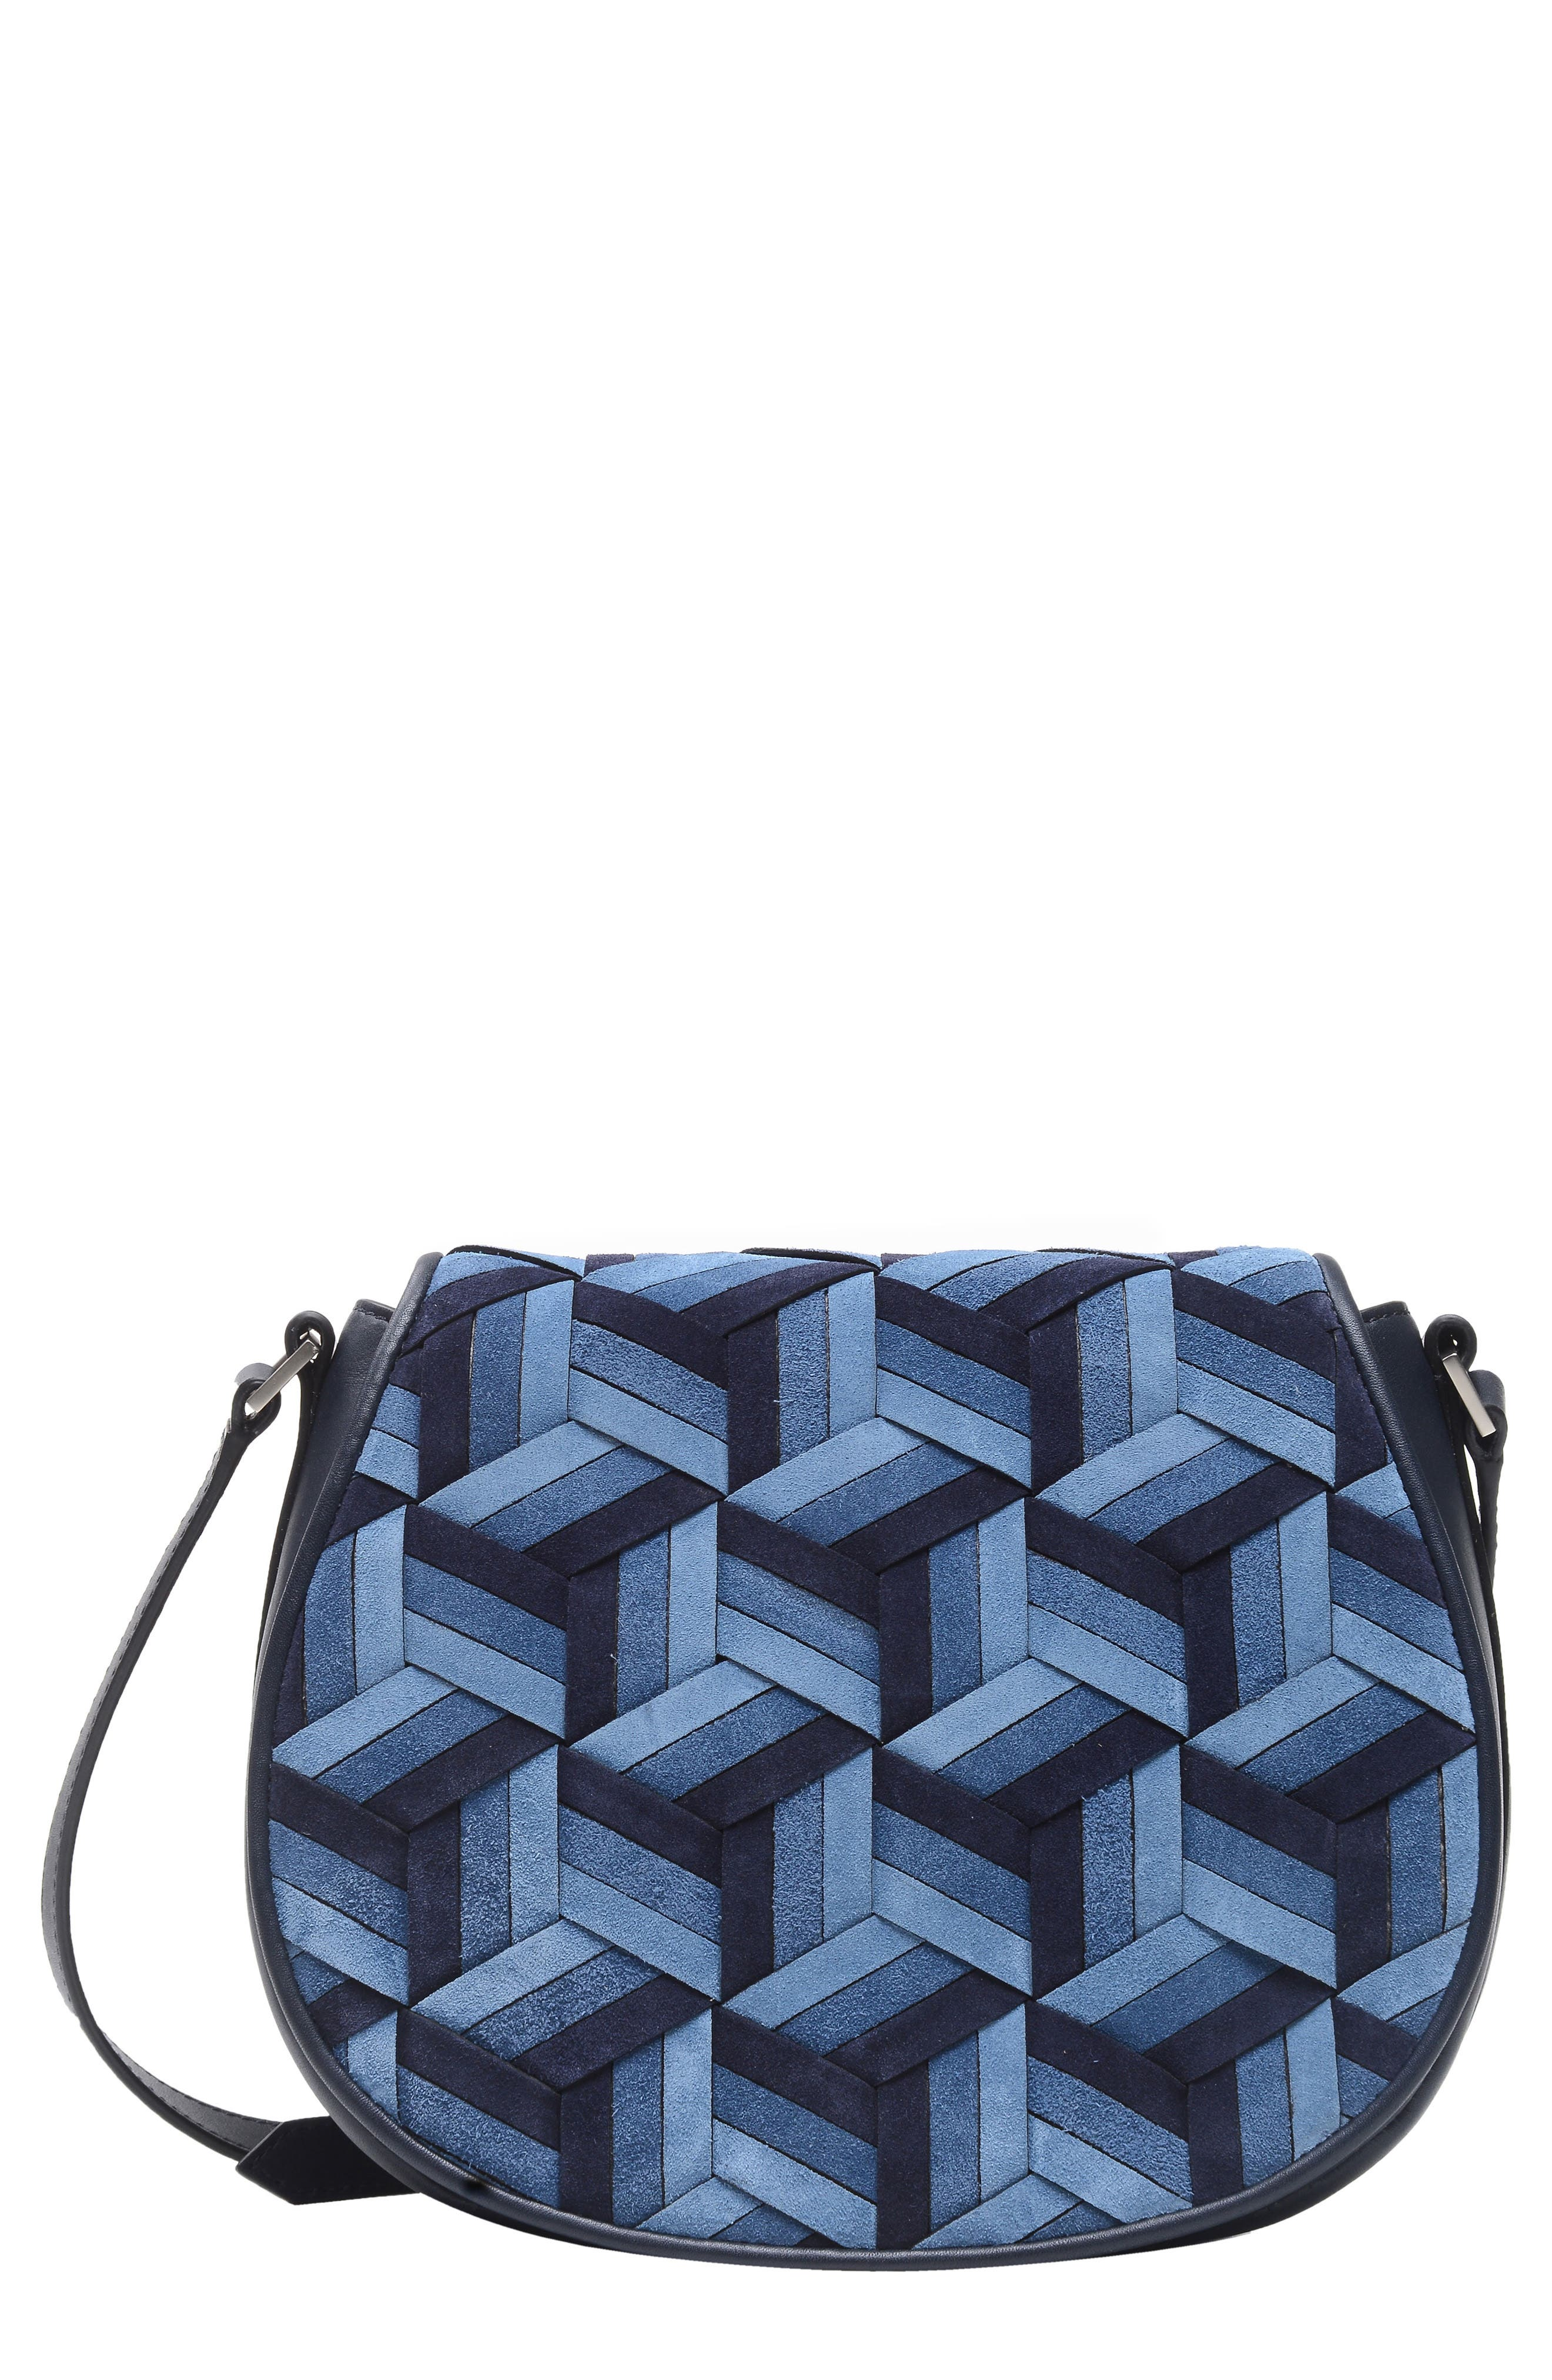 WELDEN ESCAPADE SUEDE SADDLE BAG - BLUE